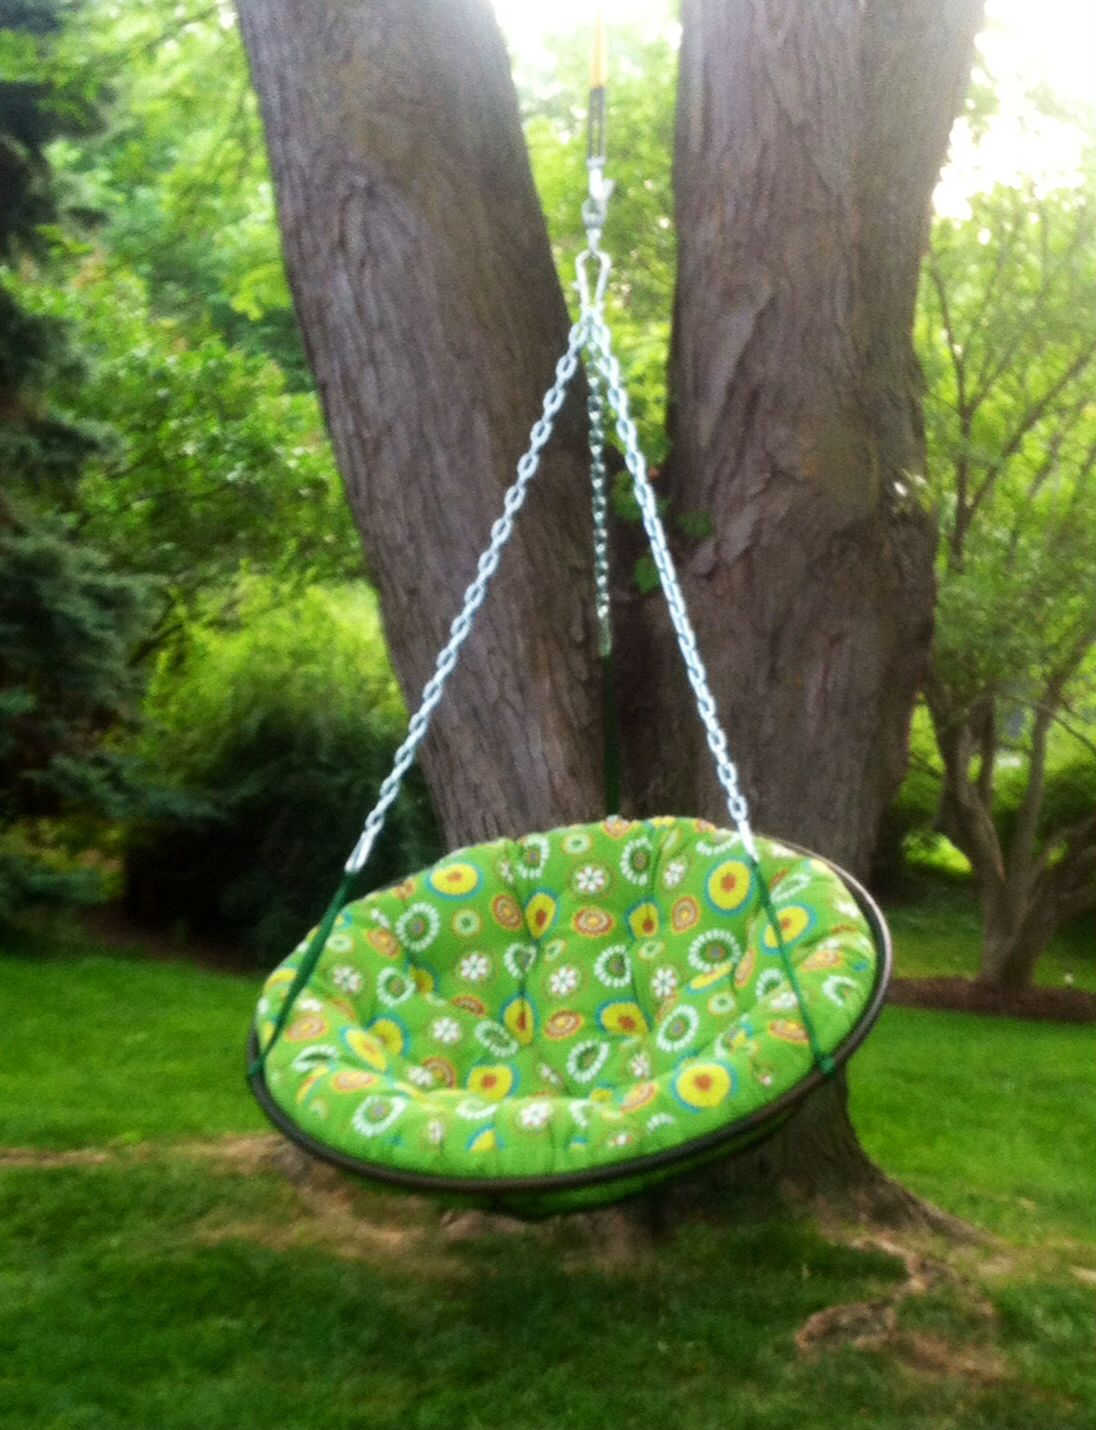 Outdoor Papasan Chair X Back Target Exciting For Home Furniture Ideas Hanging With Green Floral Cushion Seat Garden Decoration